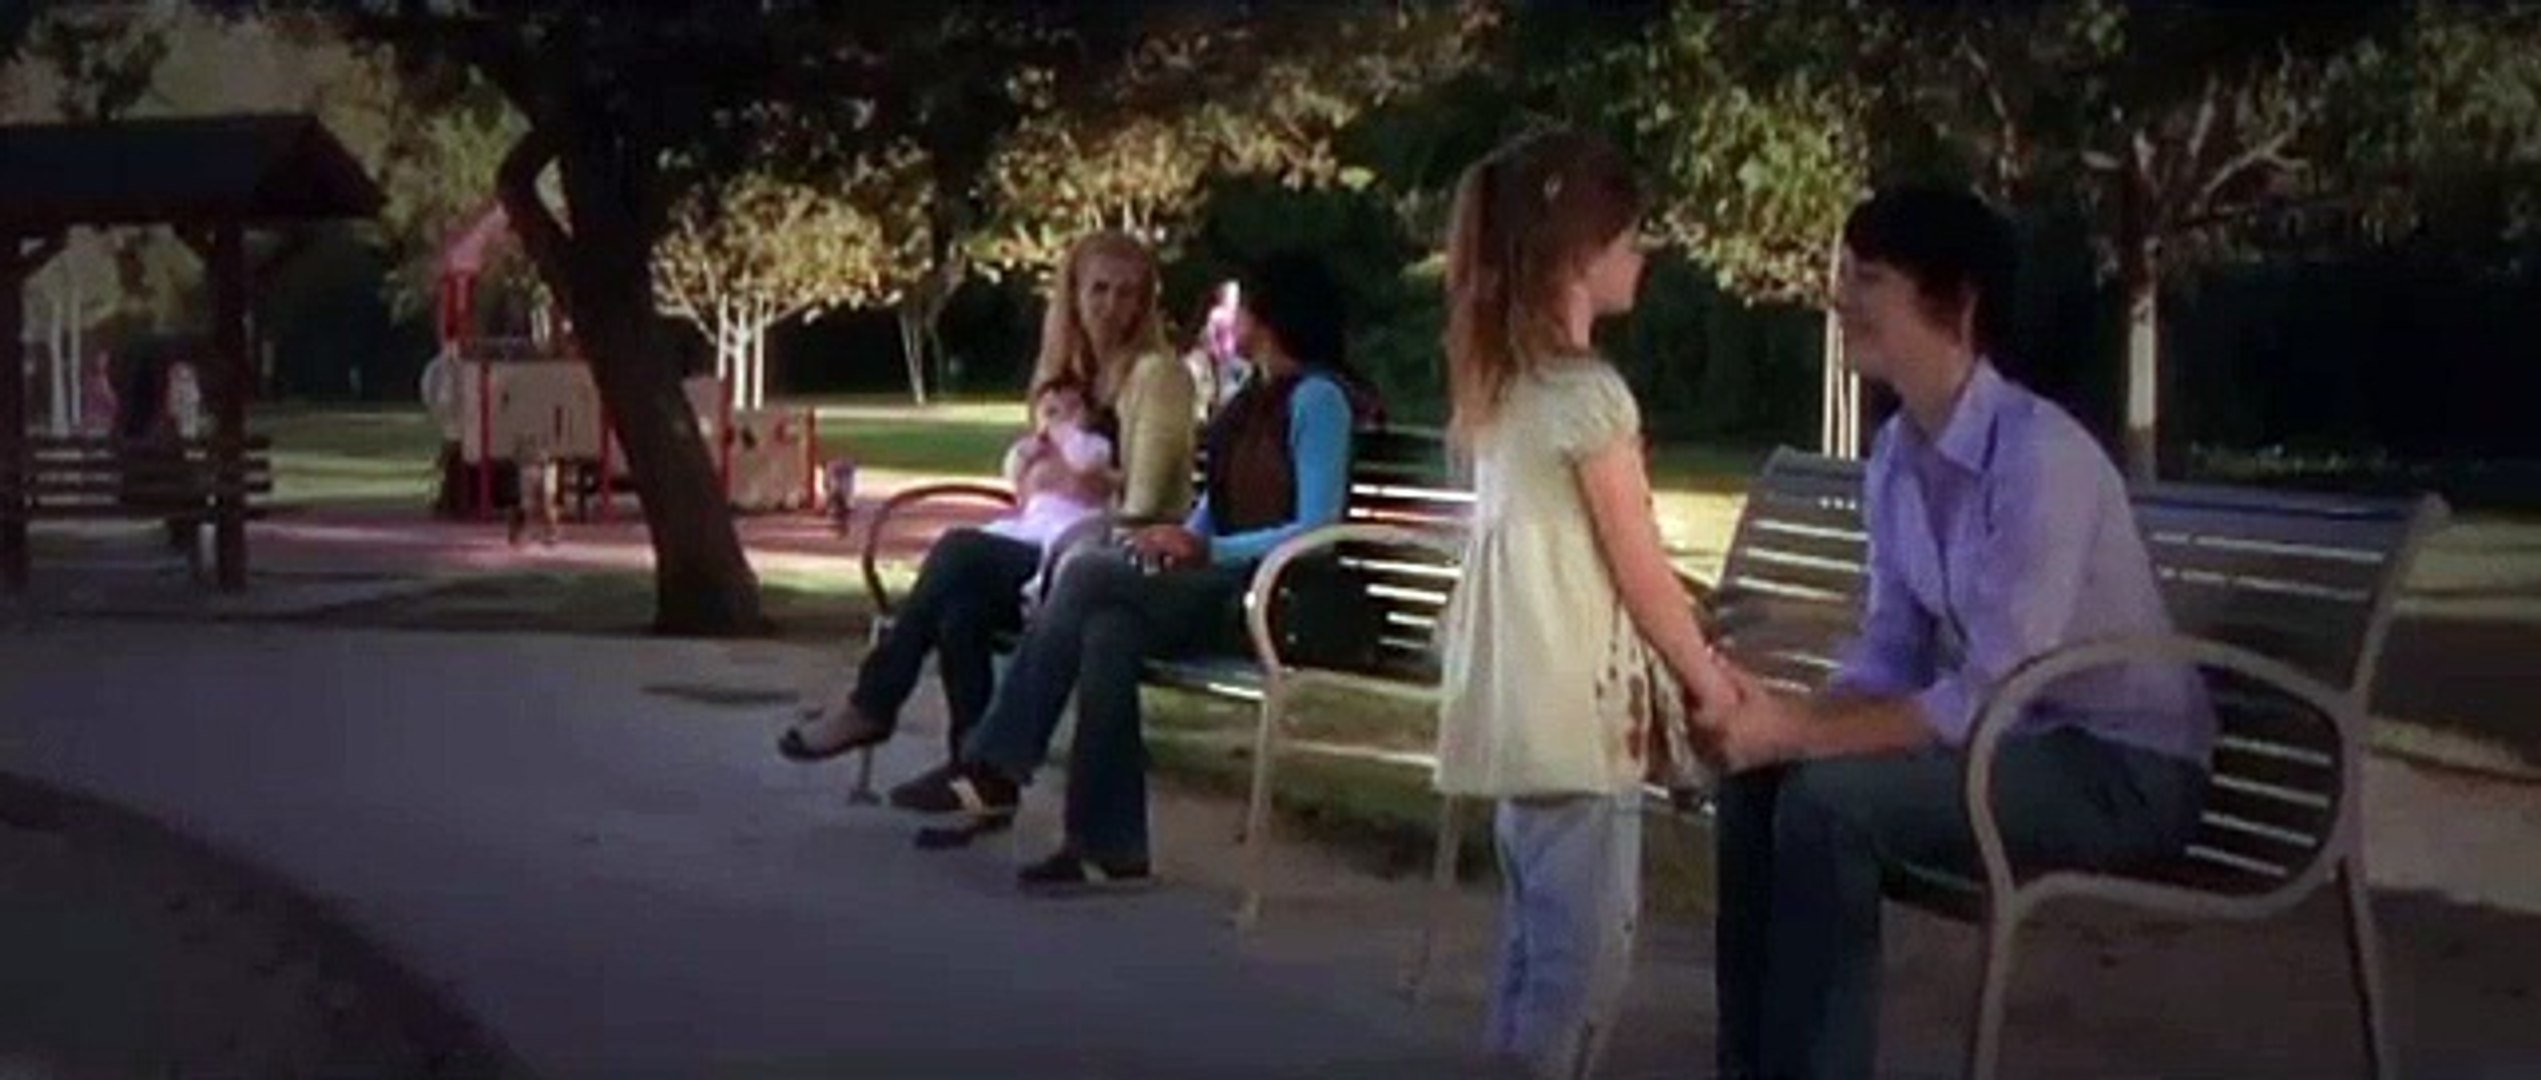 COMEDY MOVIES 2015 HD - Best comedy movies - romantic movies - New Funny movies